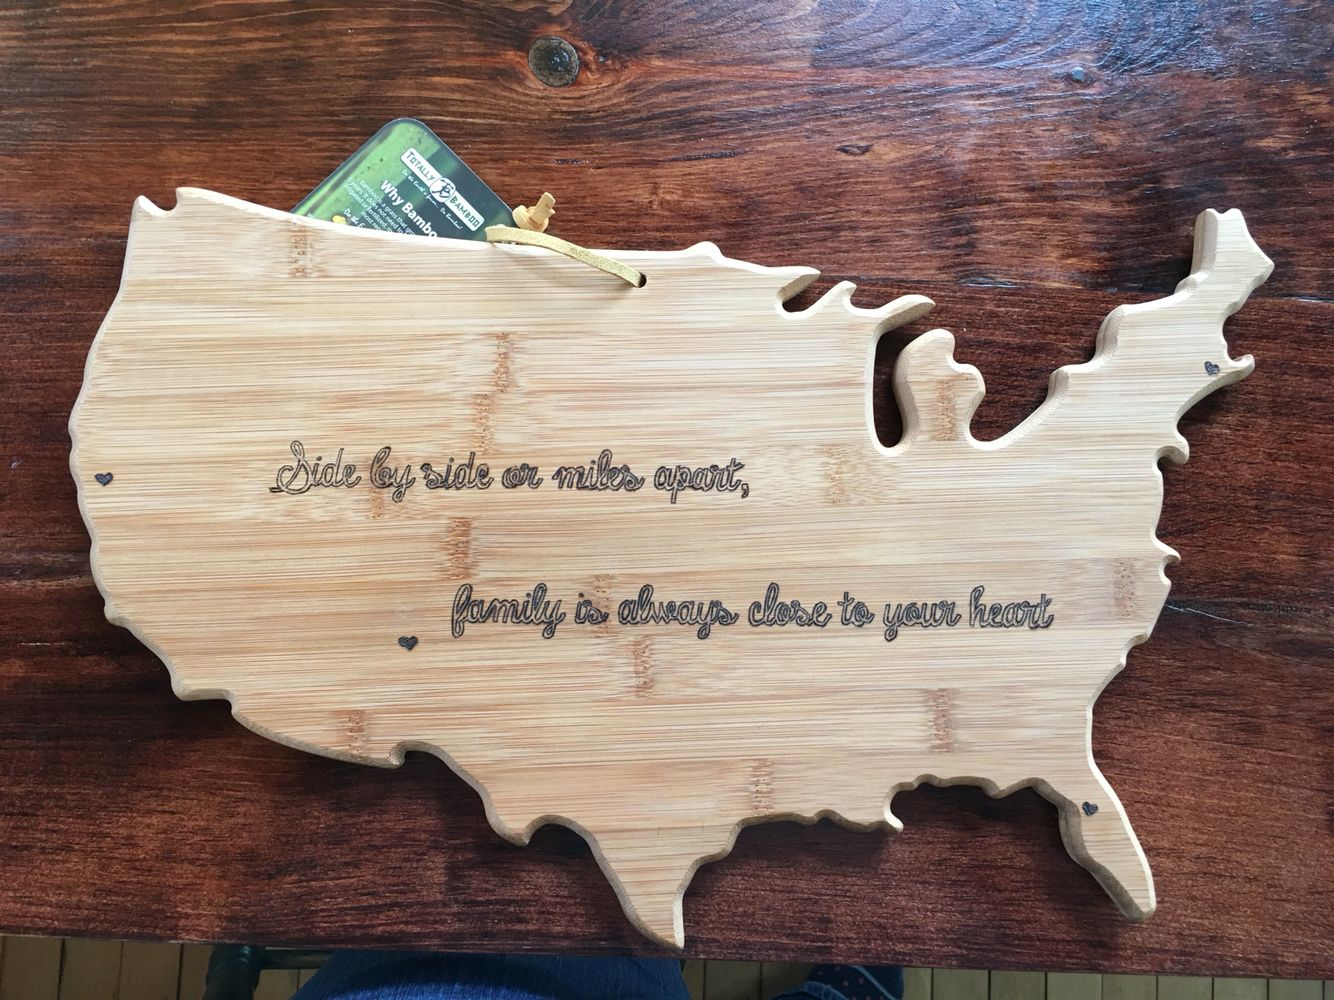 Side by side or miles apart, family is always close to your heart. Personalized cutting board.